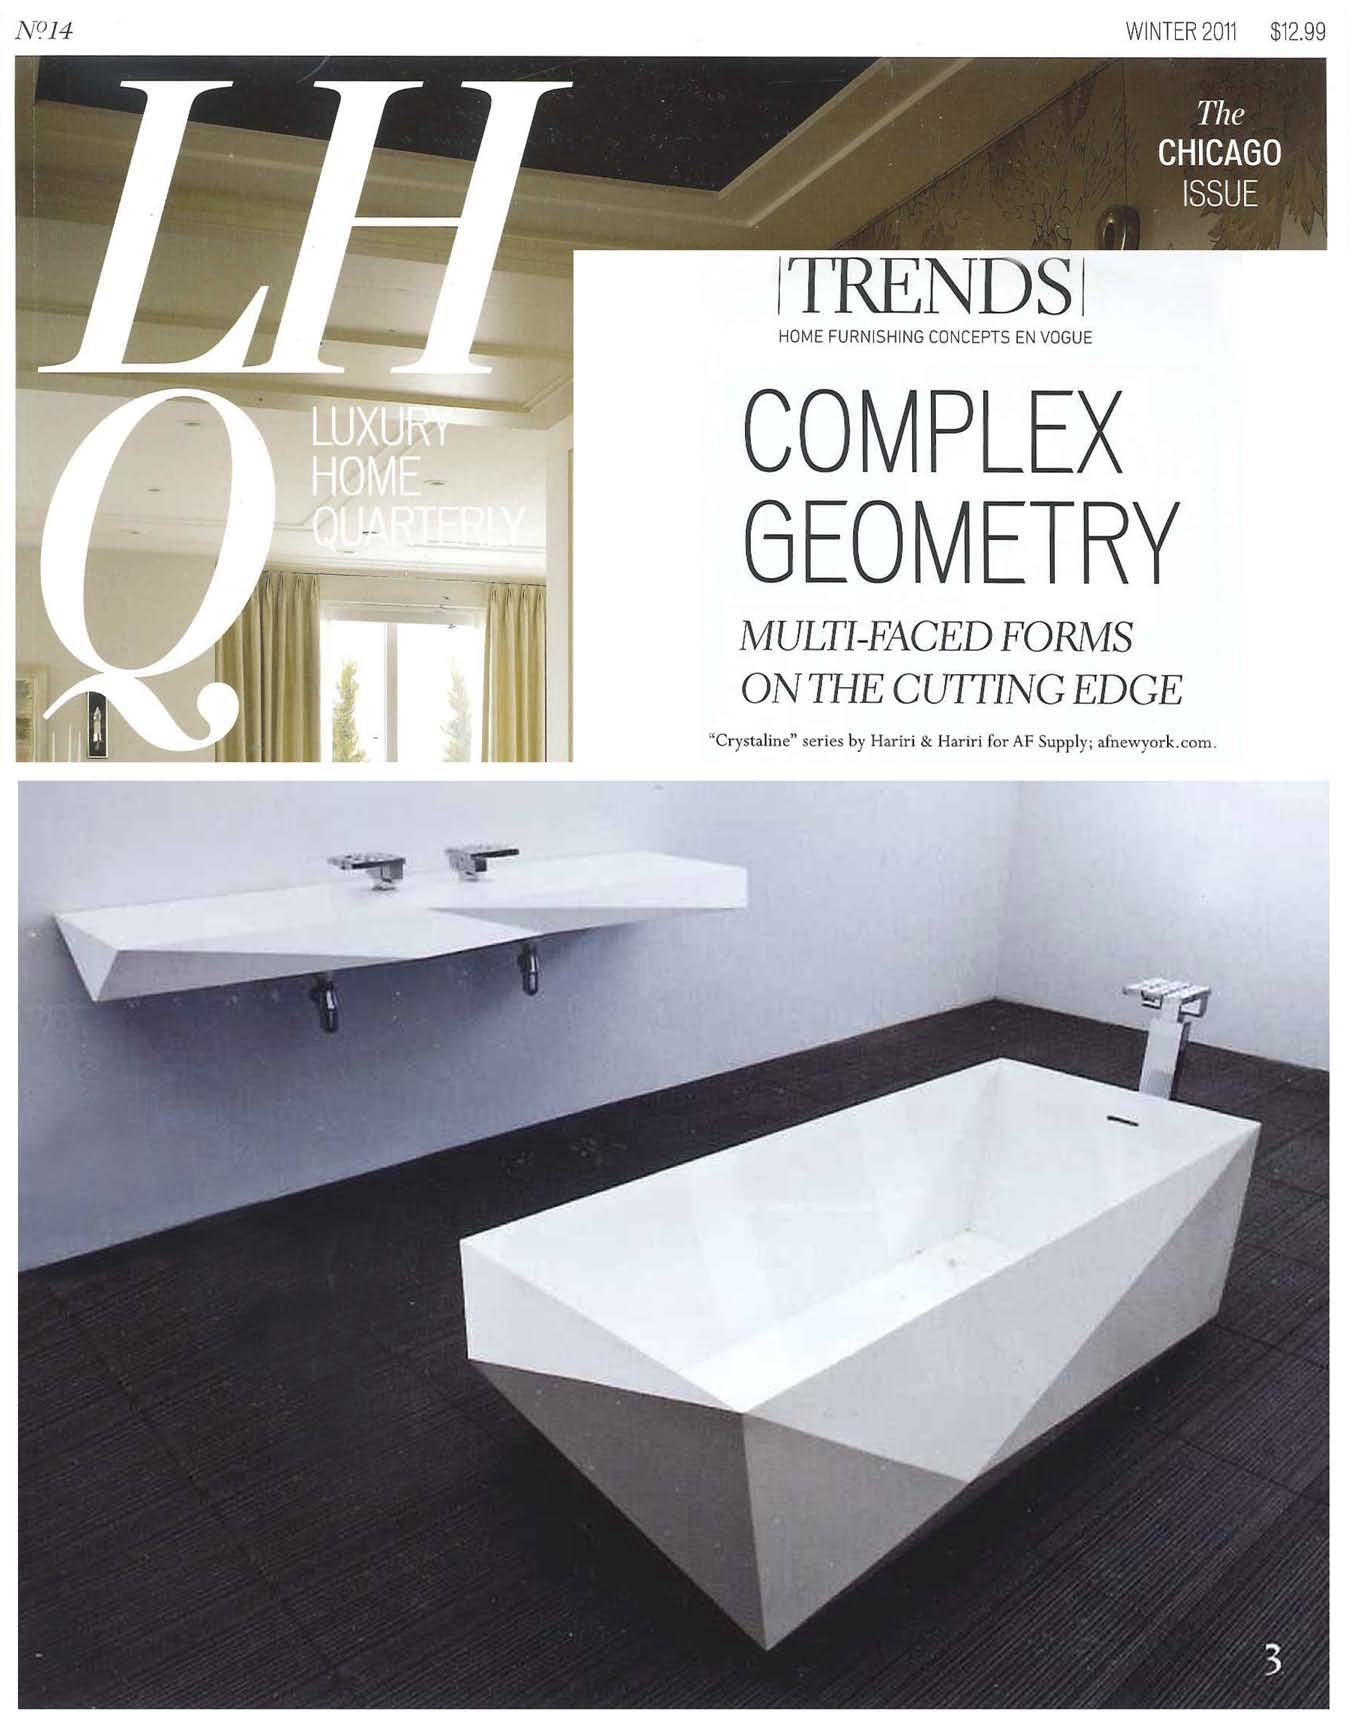 09.11 LUXURY HOME QUARTERLY (PROFILE OF H&H)